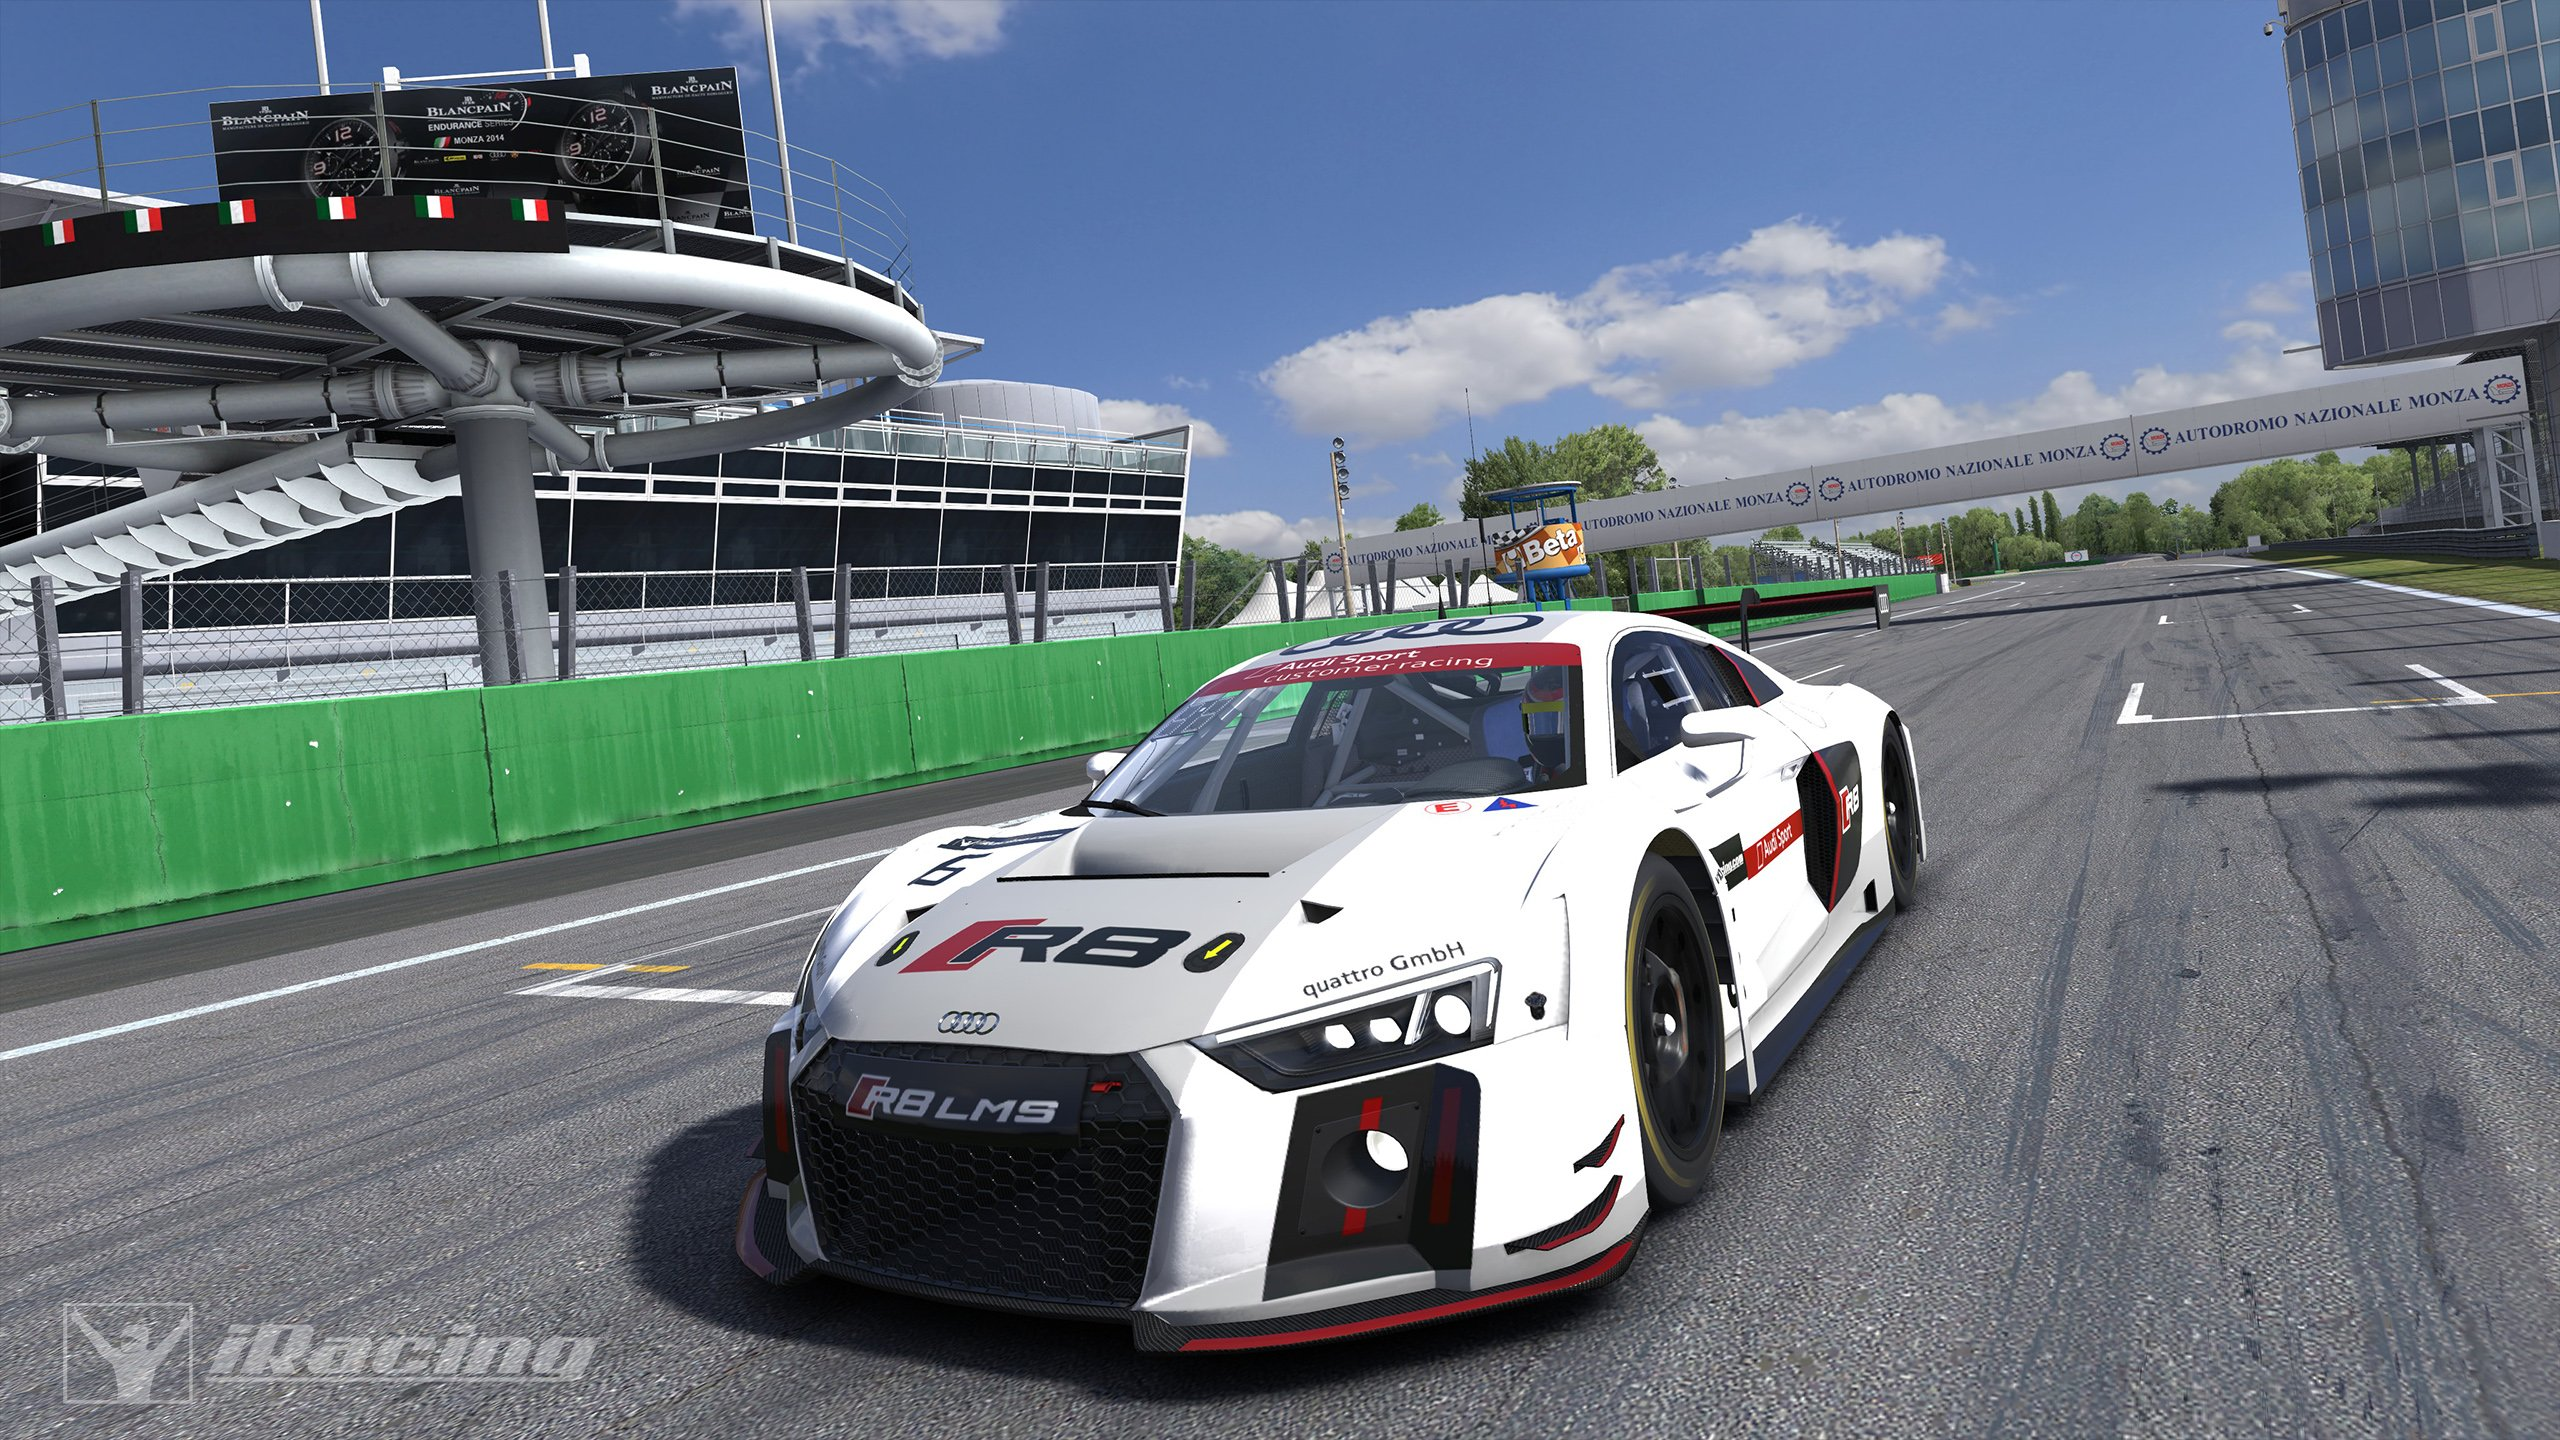 Audi R8 Lms >> iRacing Audi R8 LMS GT3 First Look - Inside Sim Racing